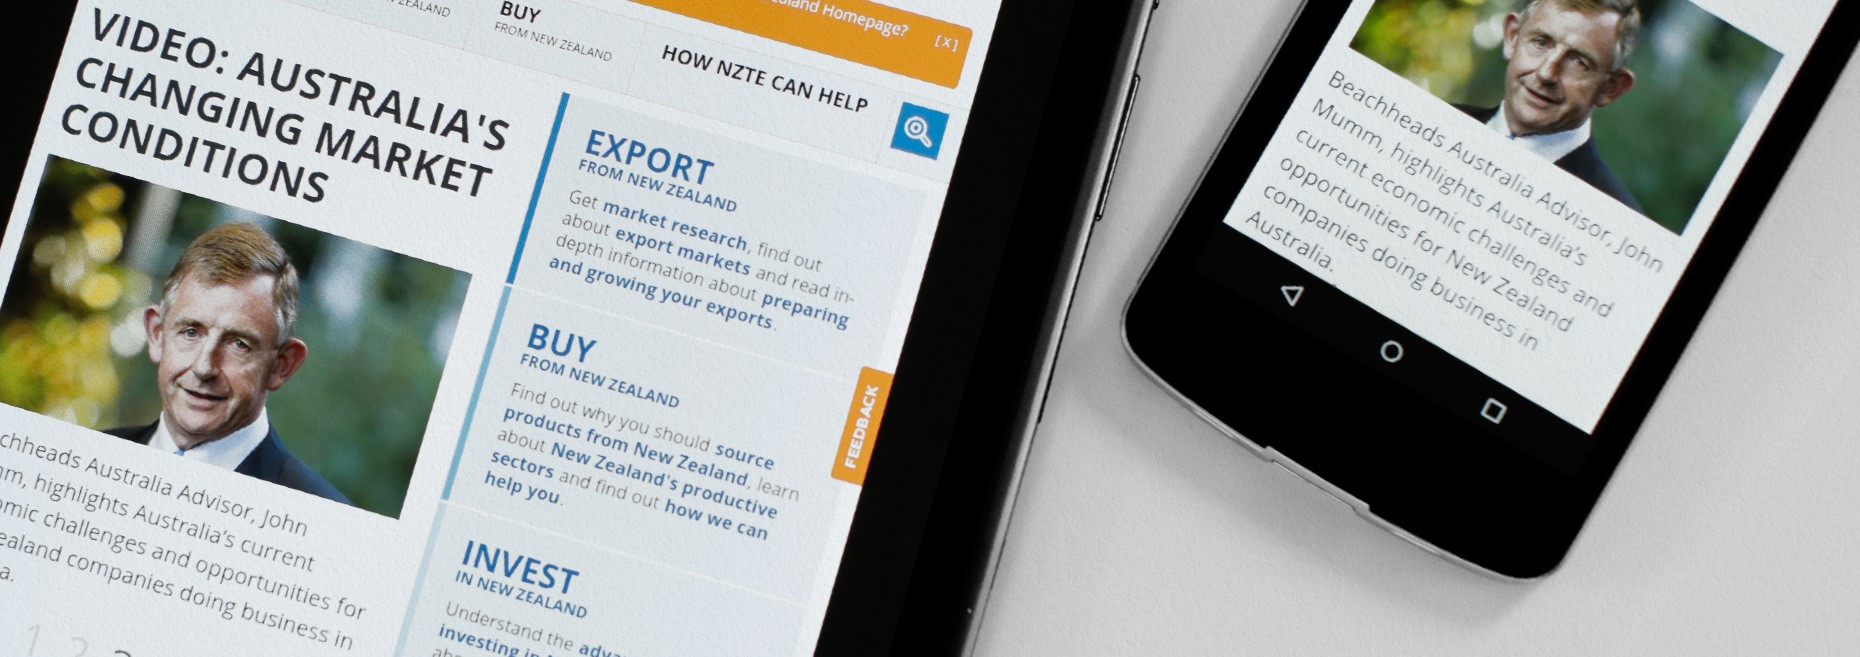 NZTE Responsive Homepage On A Tablet And Mobile.jpg